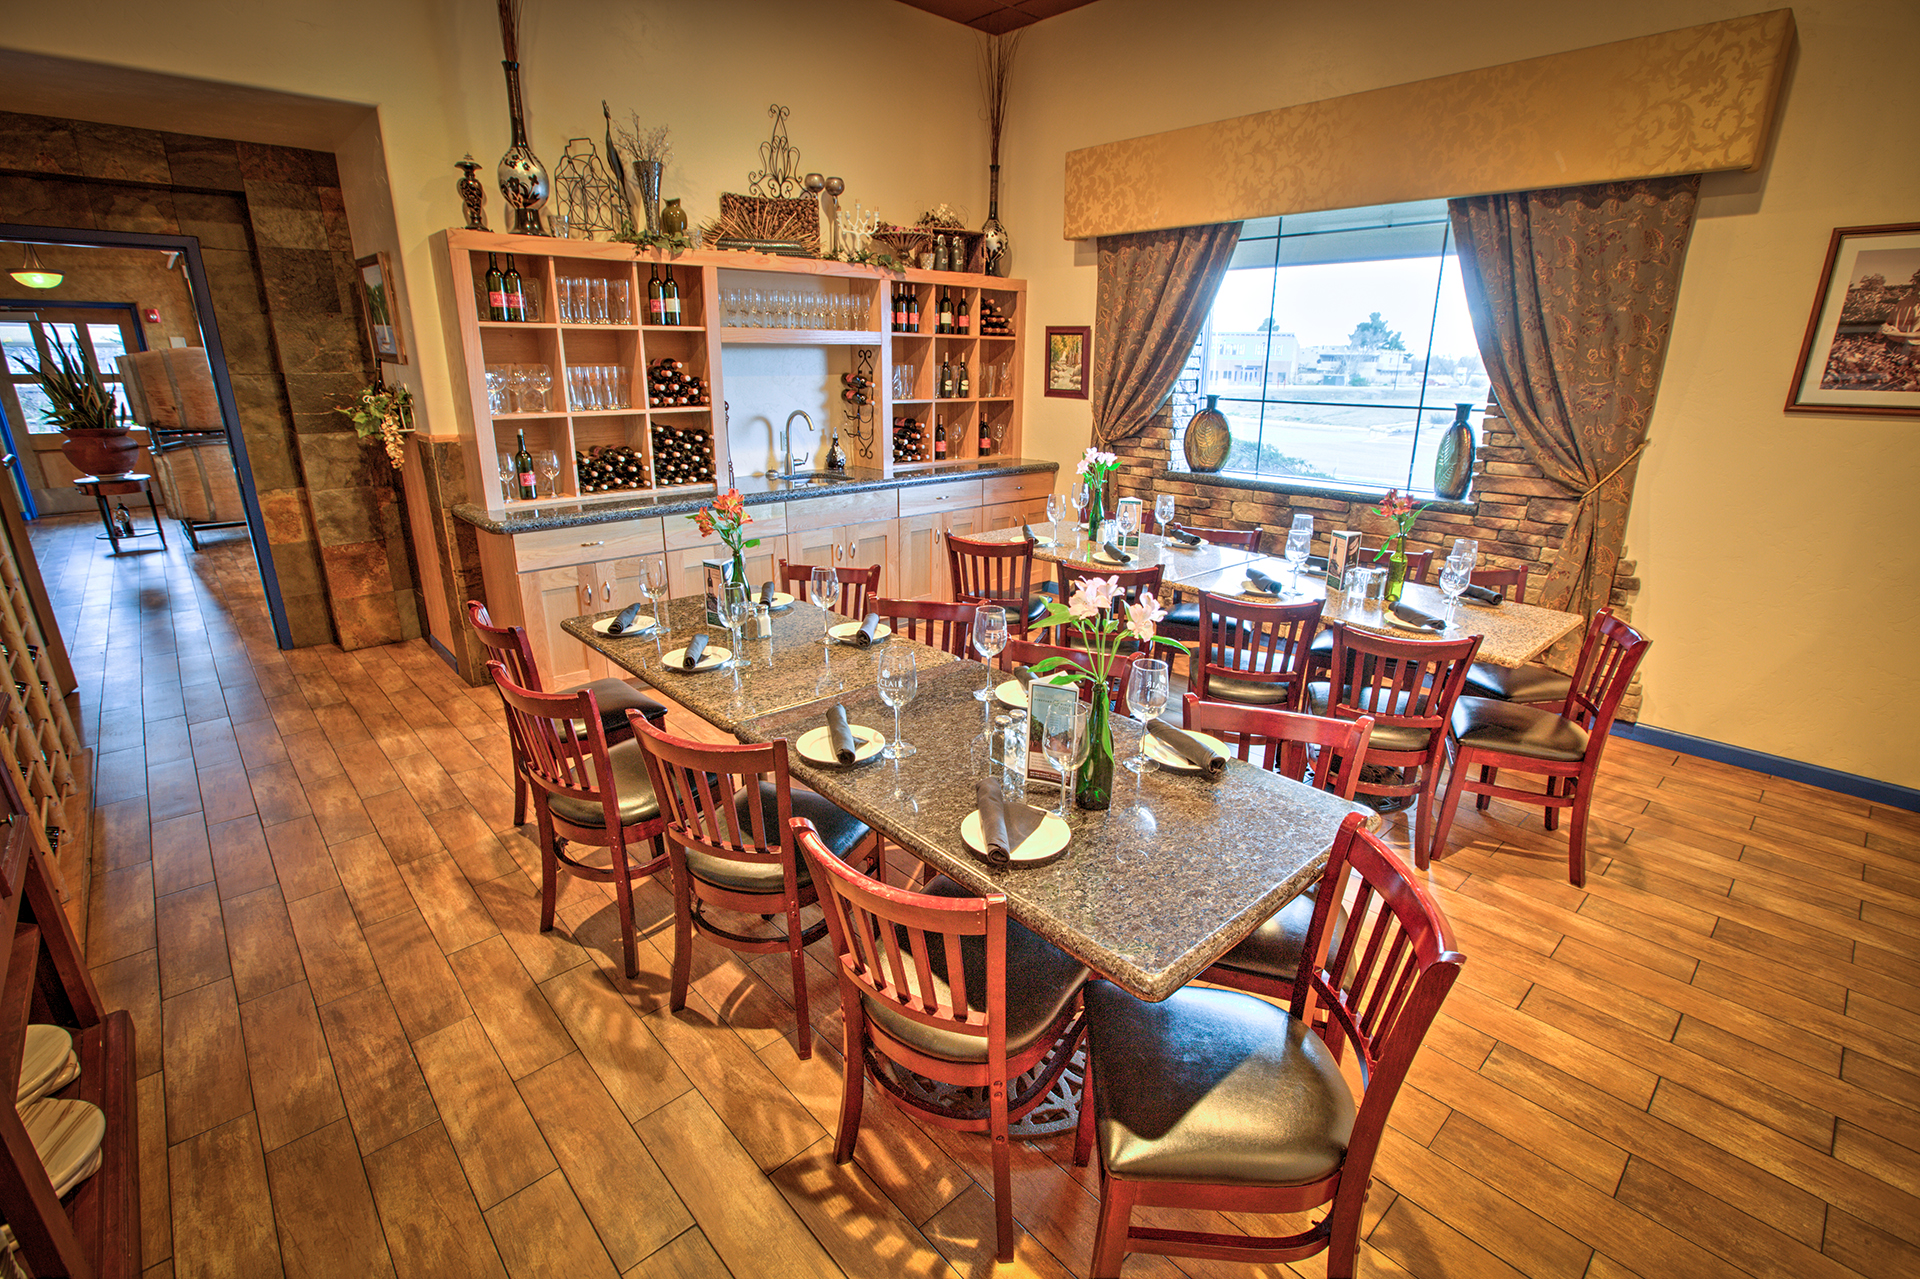 Our Wine Tasting Room is a perfect event space to host small gatherings and private events.